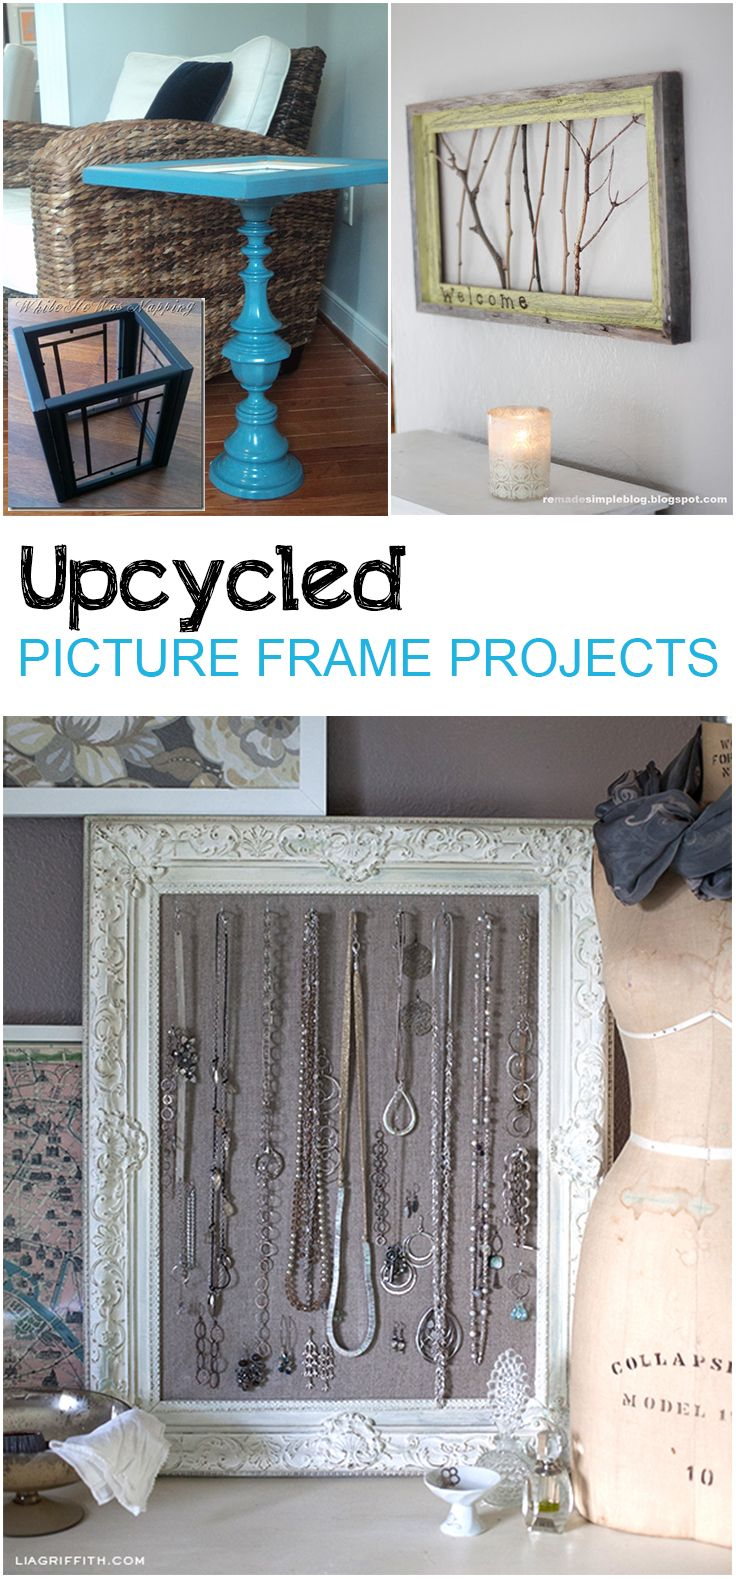 picture frames you are going to buy this yes or no picture frames ideas to recycle old picture frame look 13 new ways to display photos how to create a